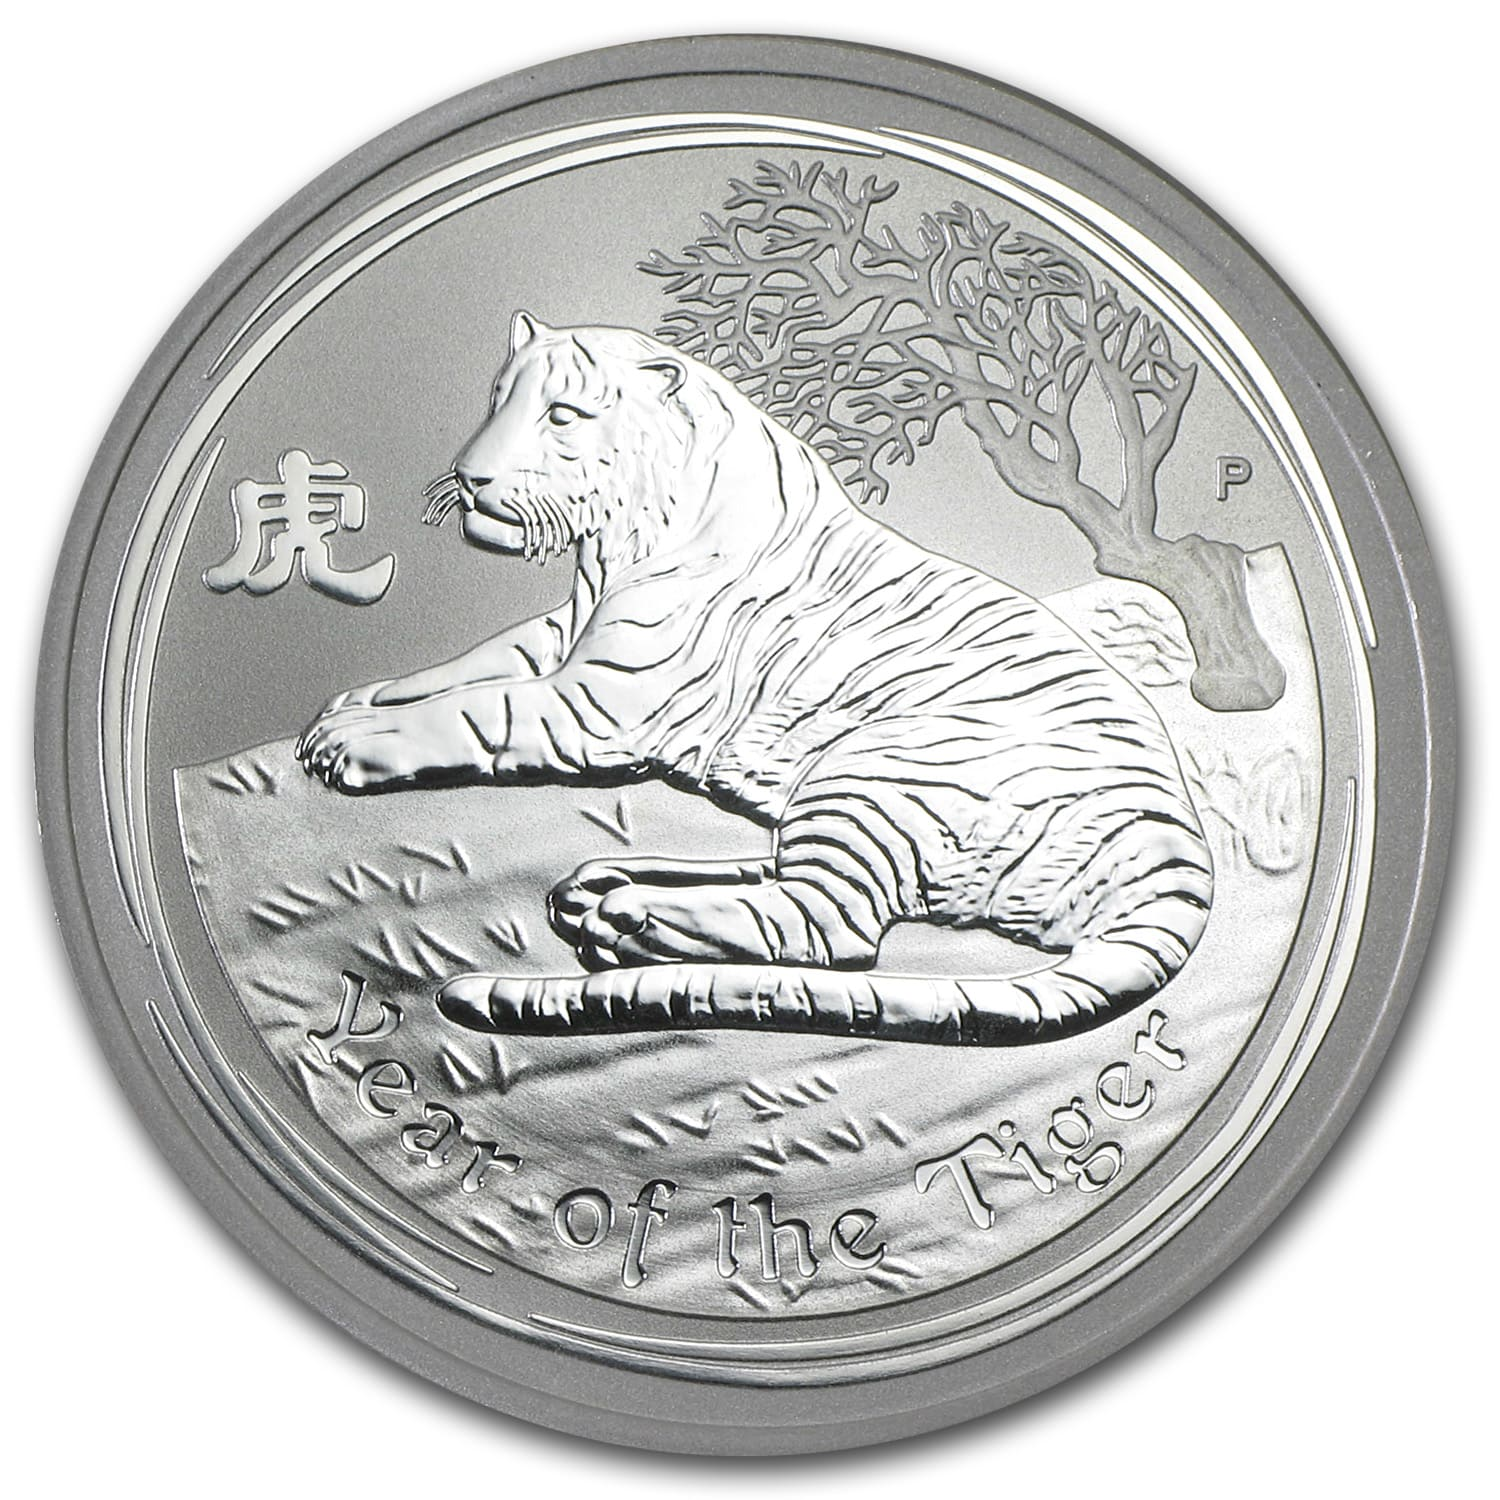 2010 Australia 1 oz Silver Year of the Tiger BU (Series II)